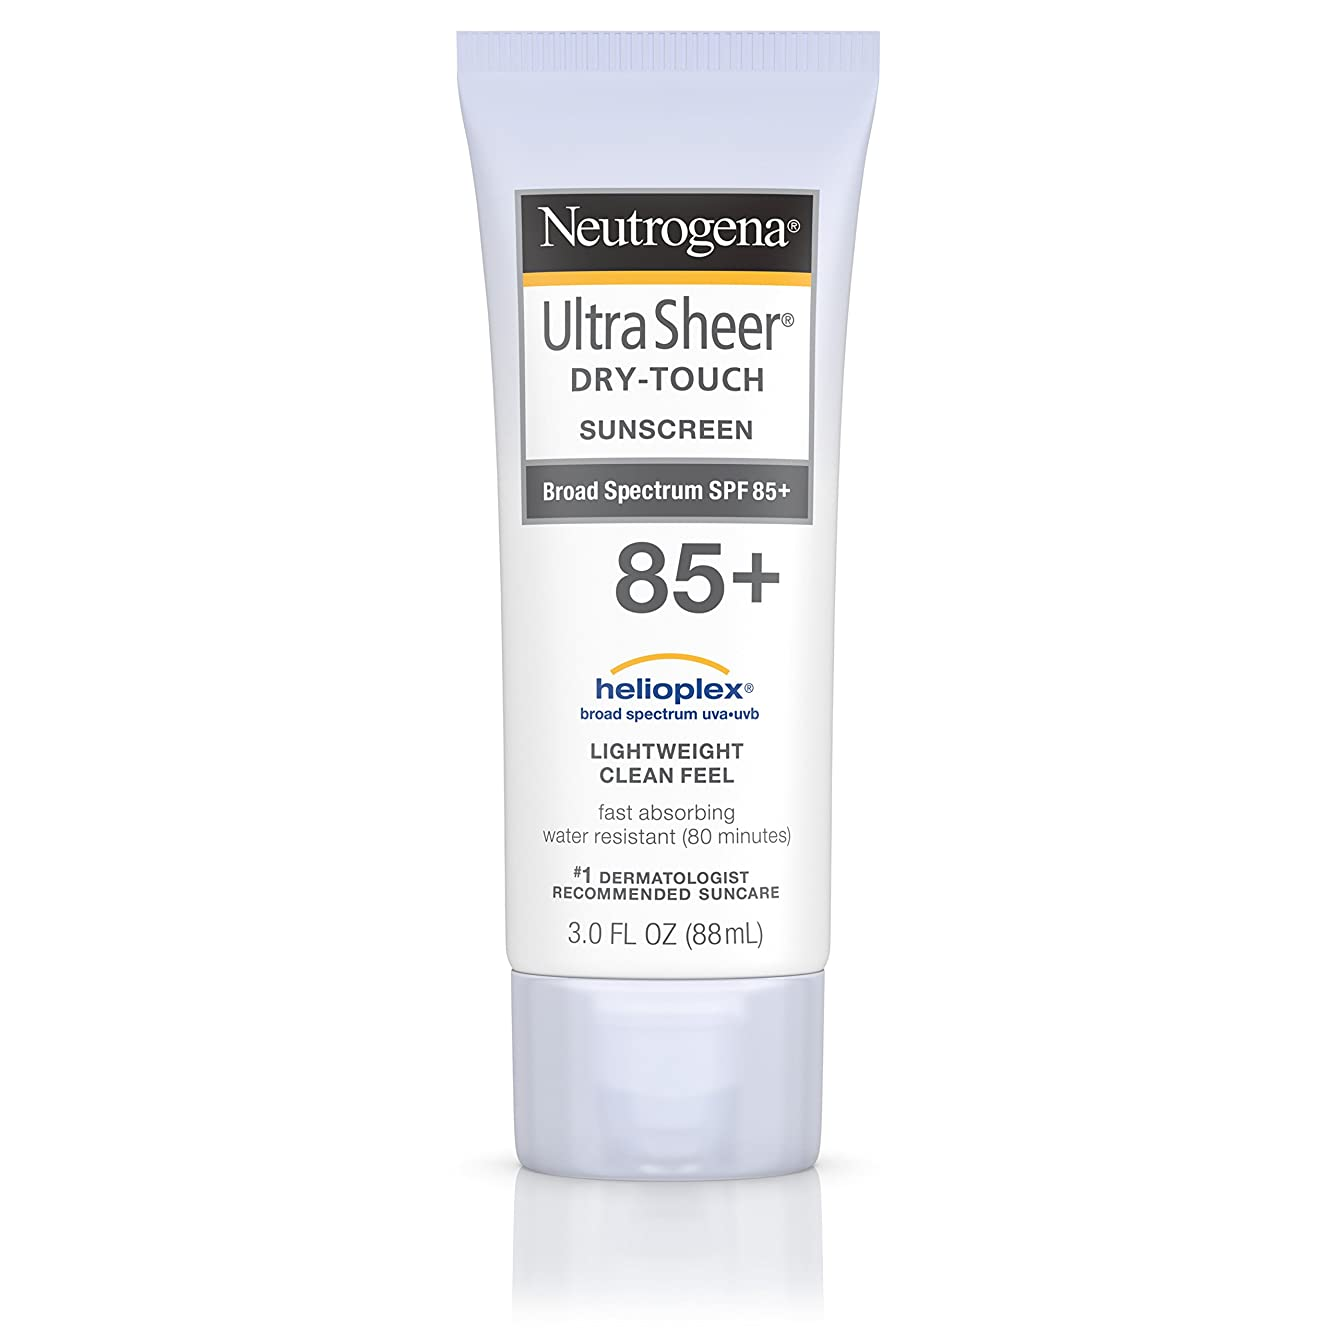 和解する終わった害Neutrogena Ultra Sheer Dry-Touch Sunblock, Spf 85 - 88 ml (並行輸入品)